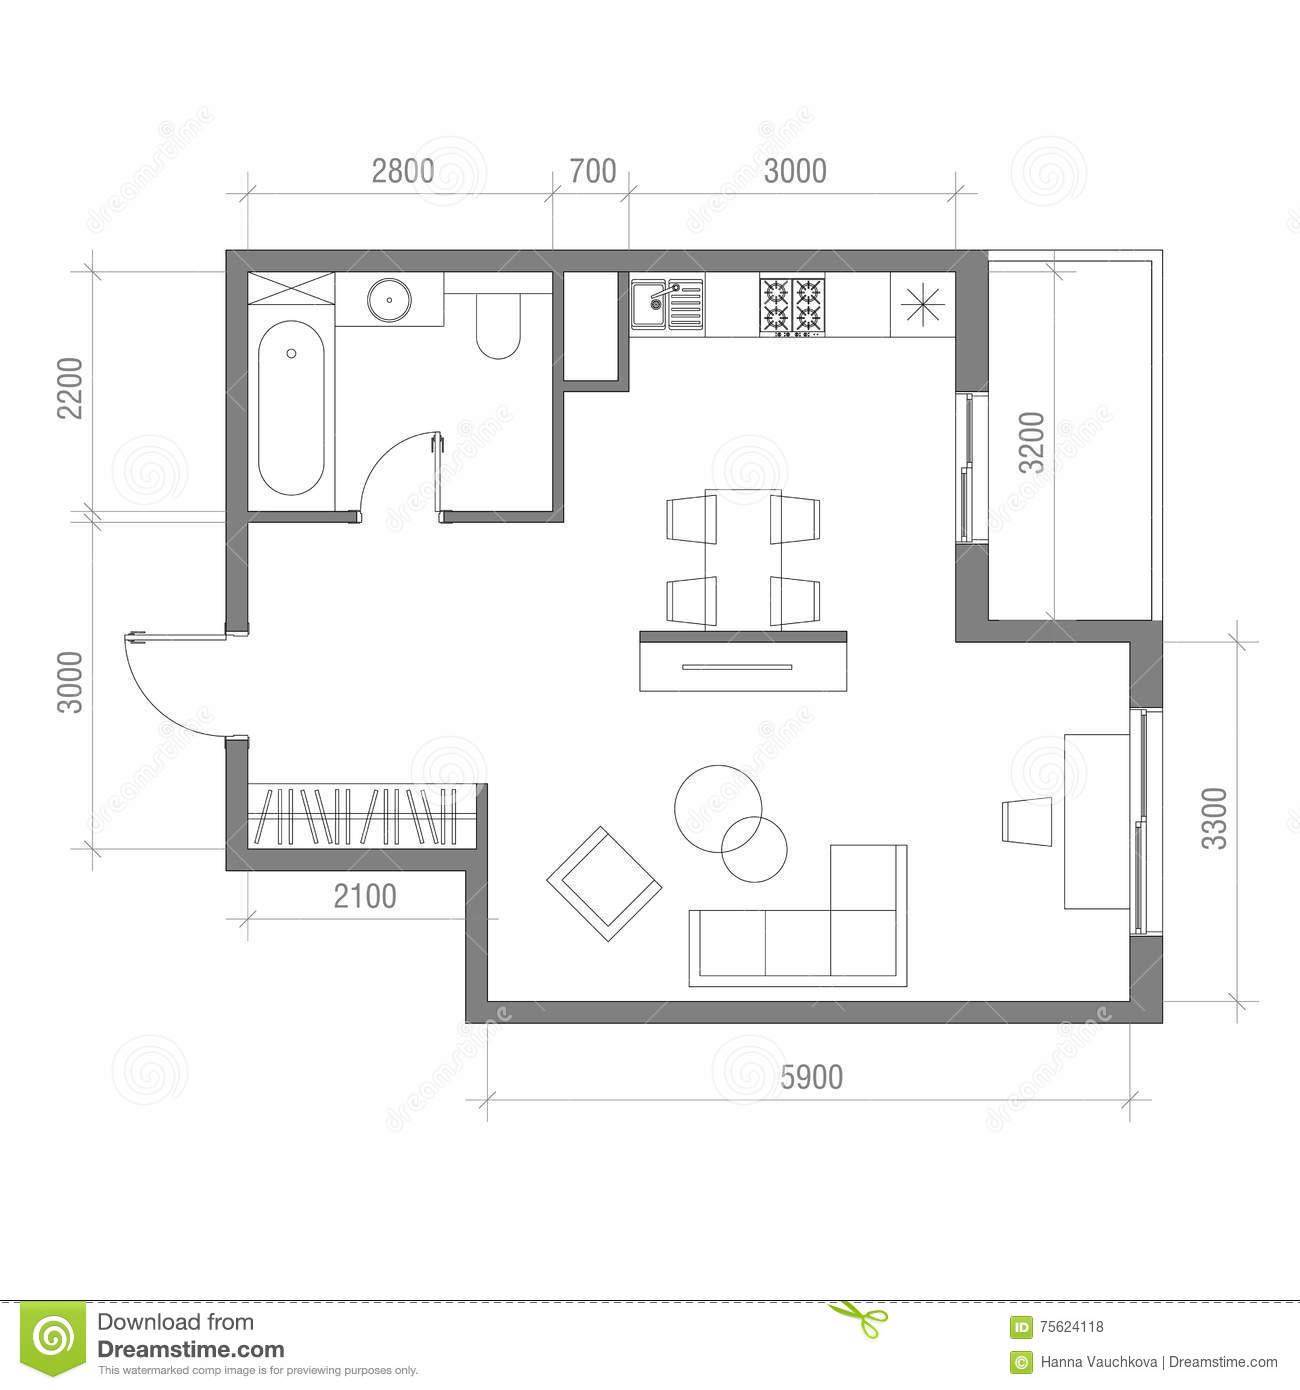 Kitchen Plans With Dimensions: Architectural Floor Plan With Dimensions. Studio Apartment